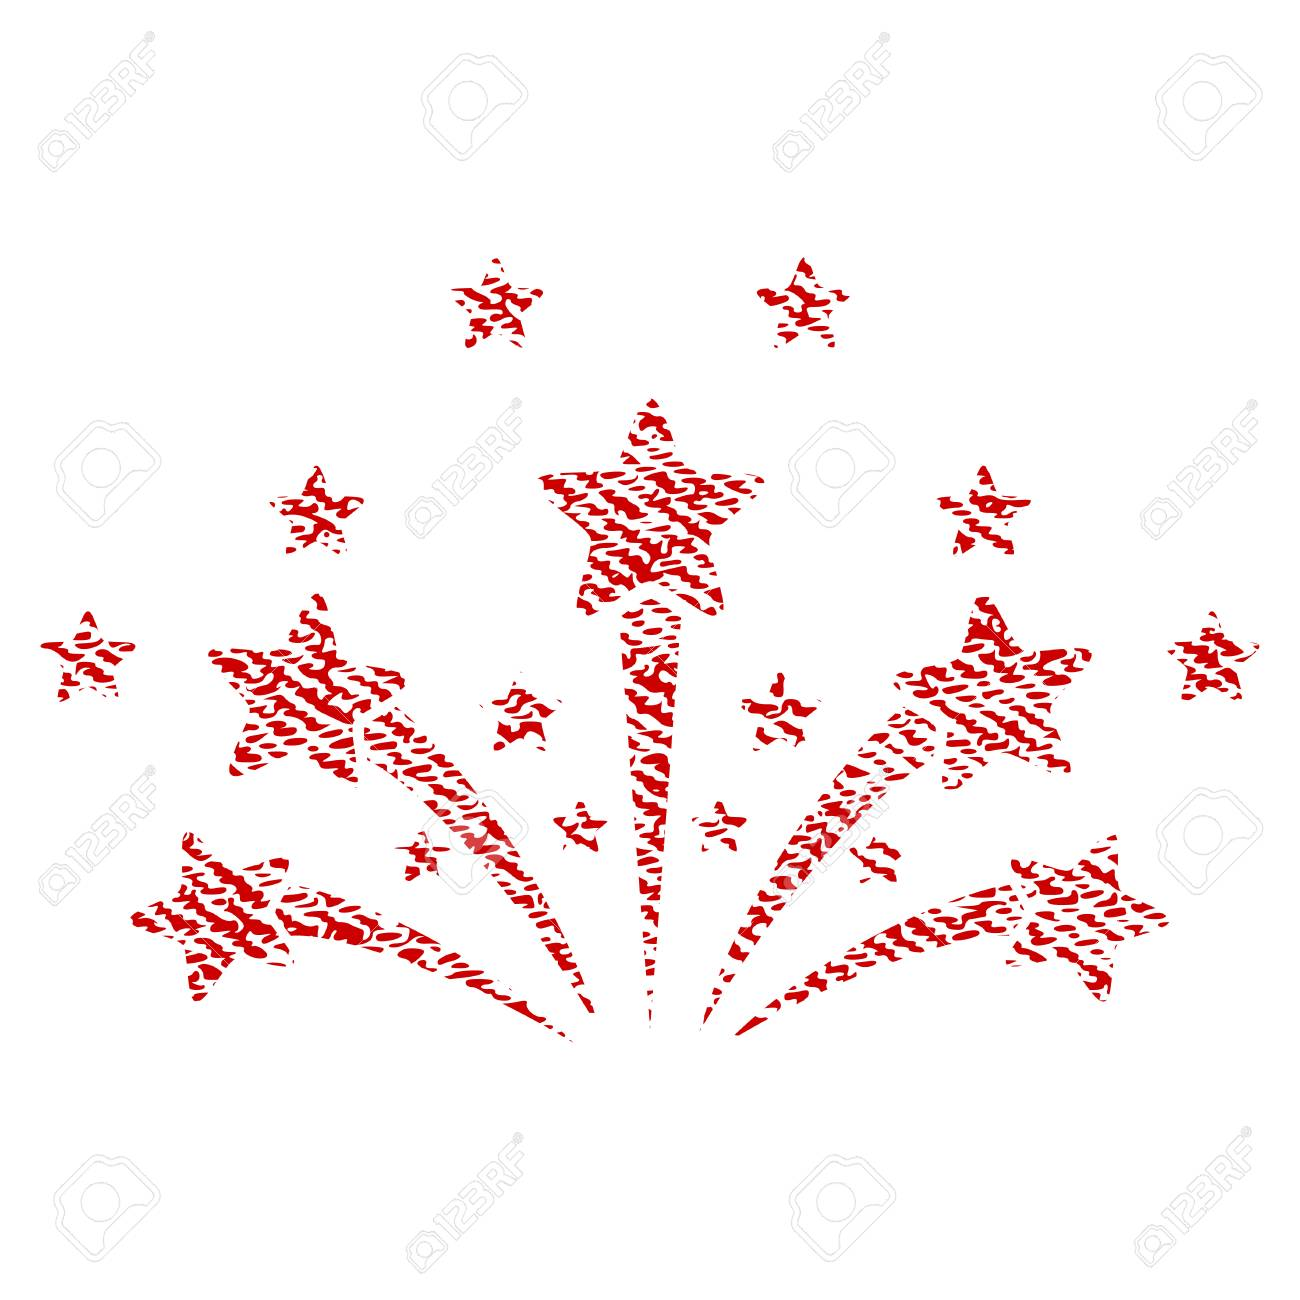 star fireworks vector textured icon for overlay watermark stamps rh 123rf com Firework Rocket Vector Fireworks Vector Transparent